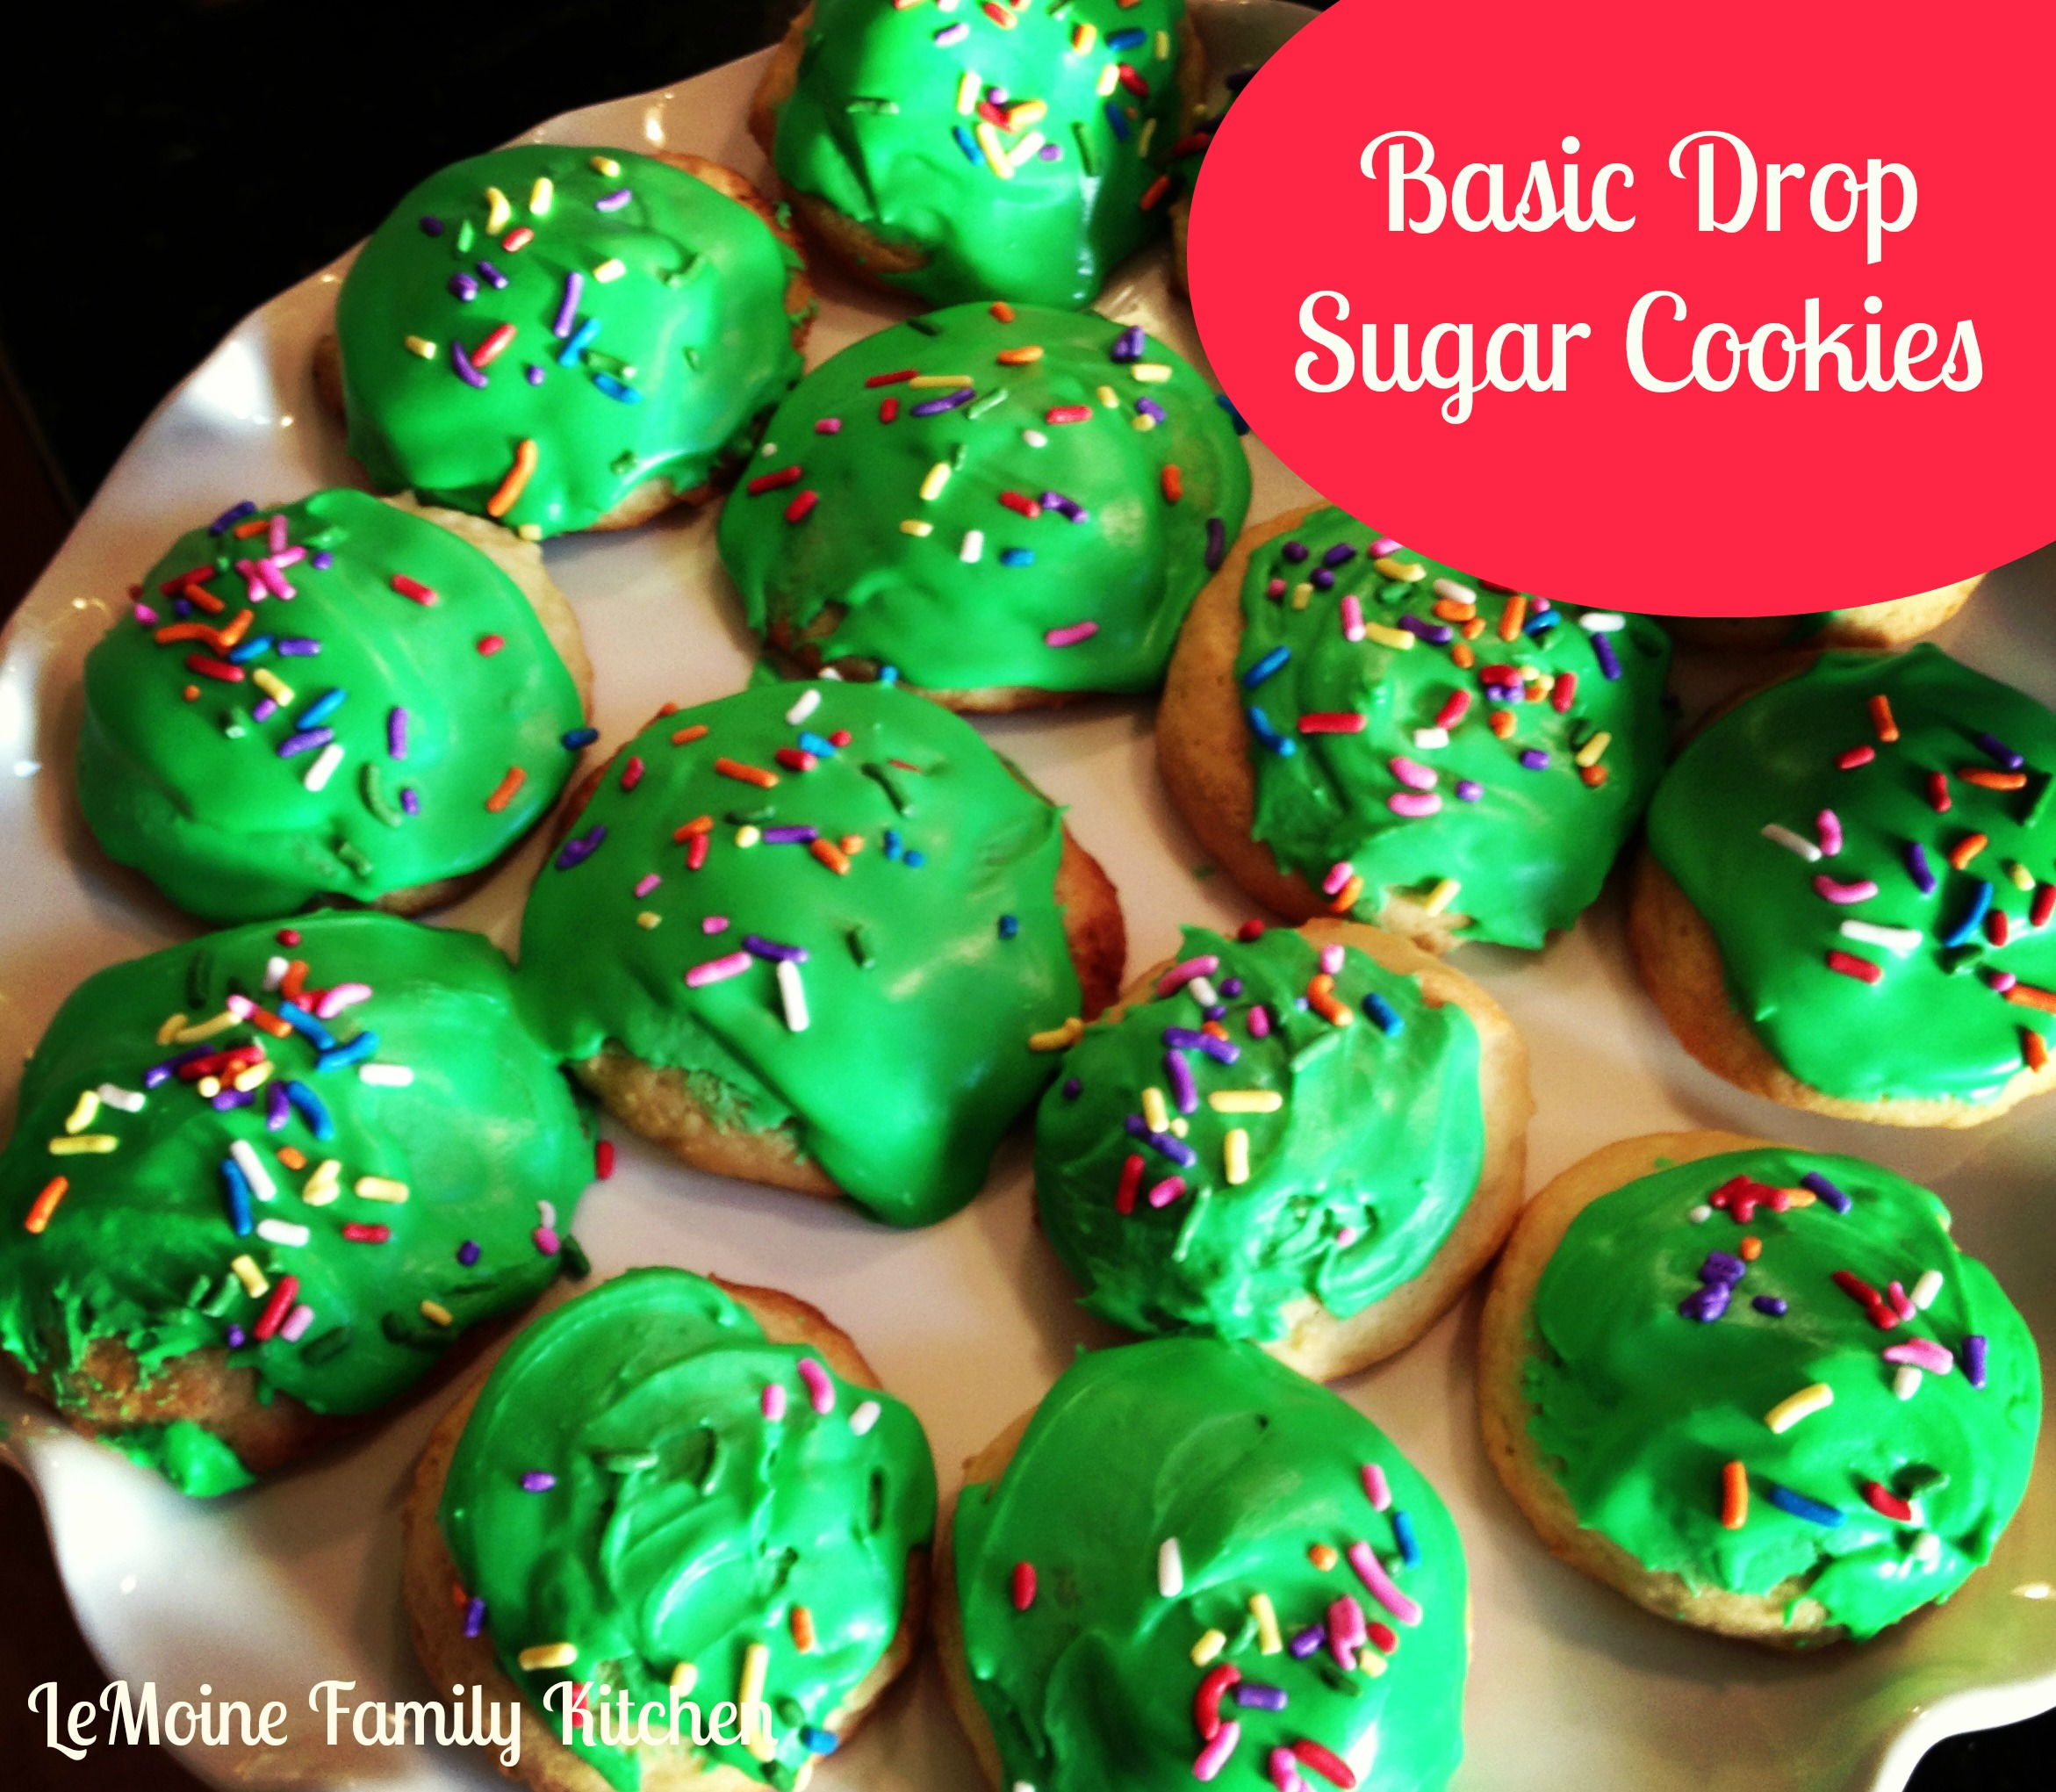 Basic Drop Sugar Cookies